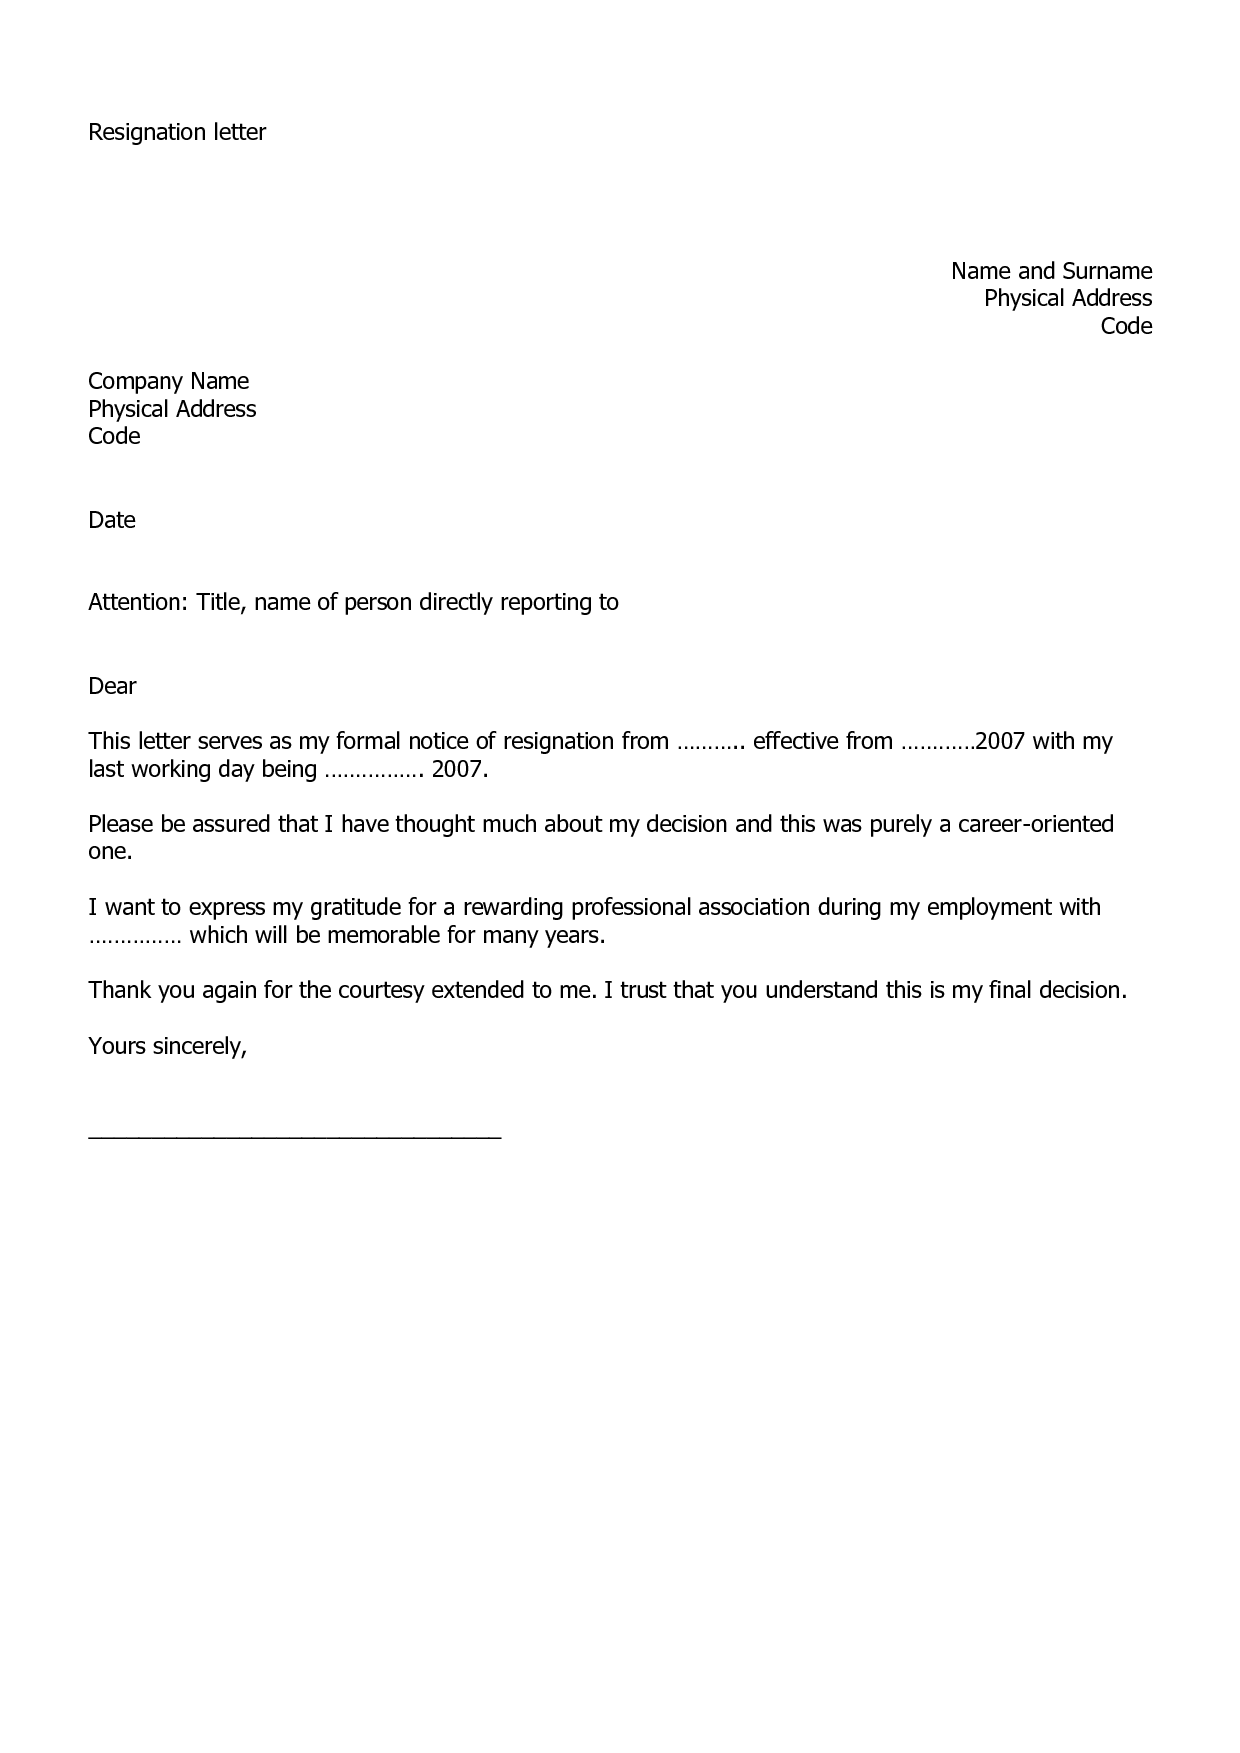 resignation letter to a good employer resume builder resignation letter to a good employer how to write a resignation letter sample resignation resignation